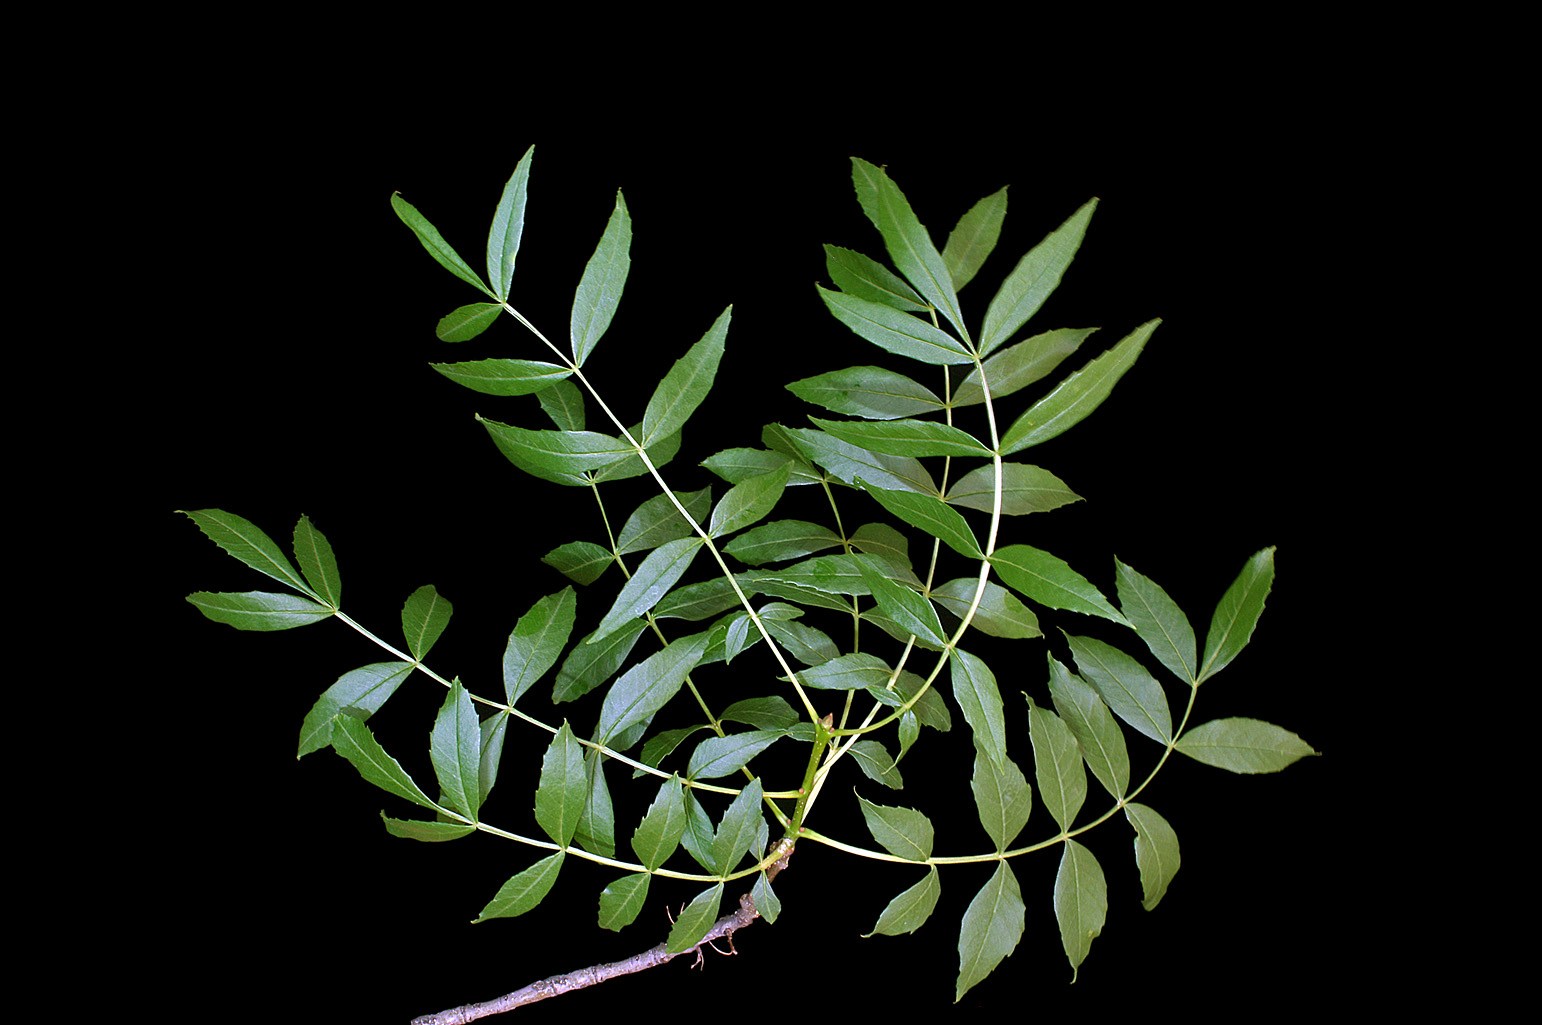 Branch with opposite imparipinnate leaves, each of which has 11 lanceolate leaflets with serrate margins